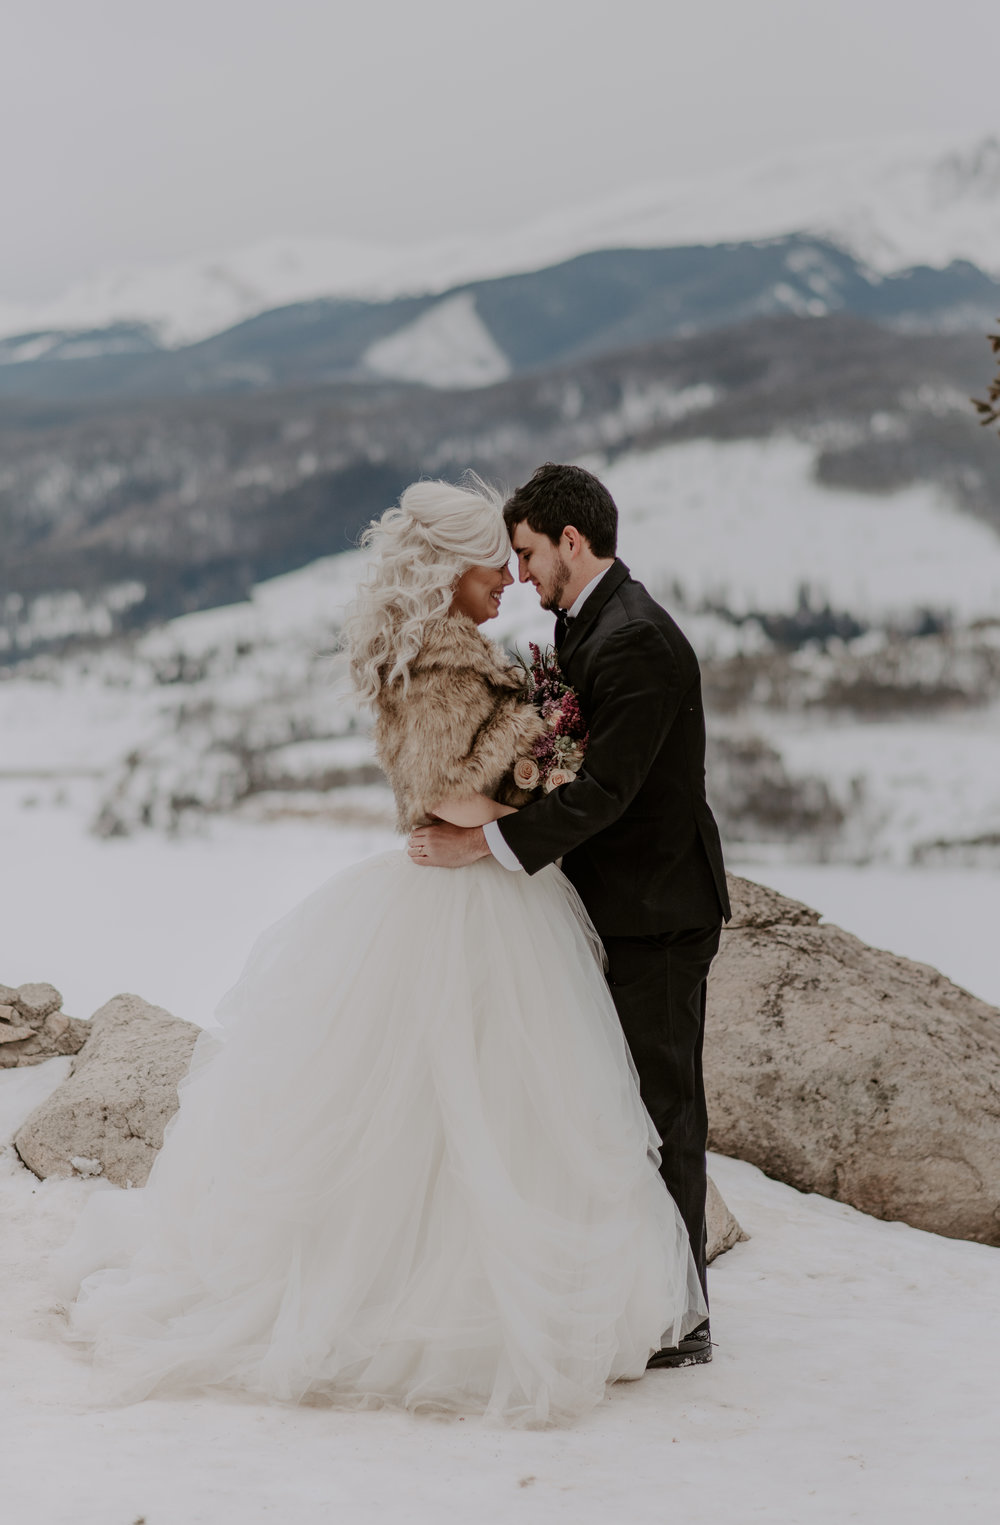 Destination elopement and wedding photographer based in Denver, Colorado.